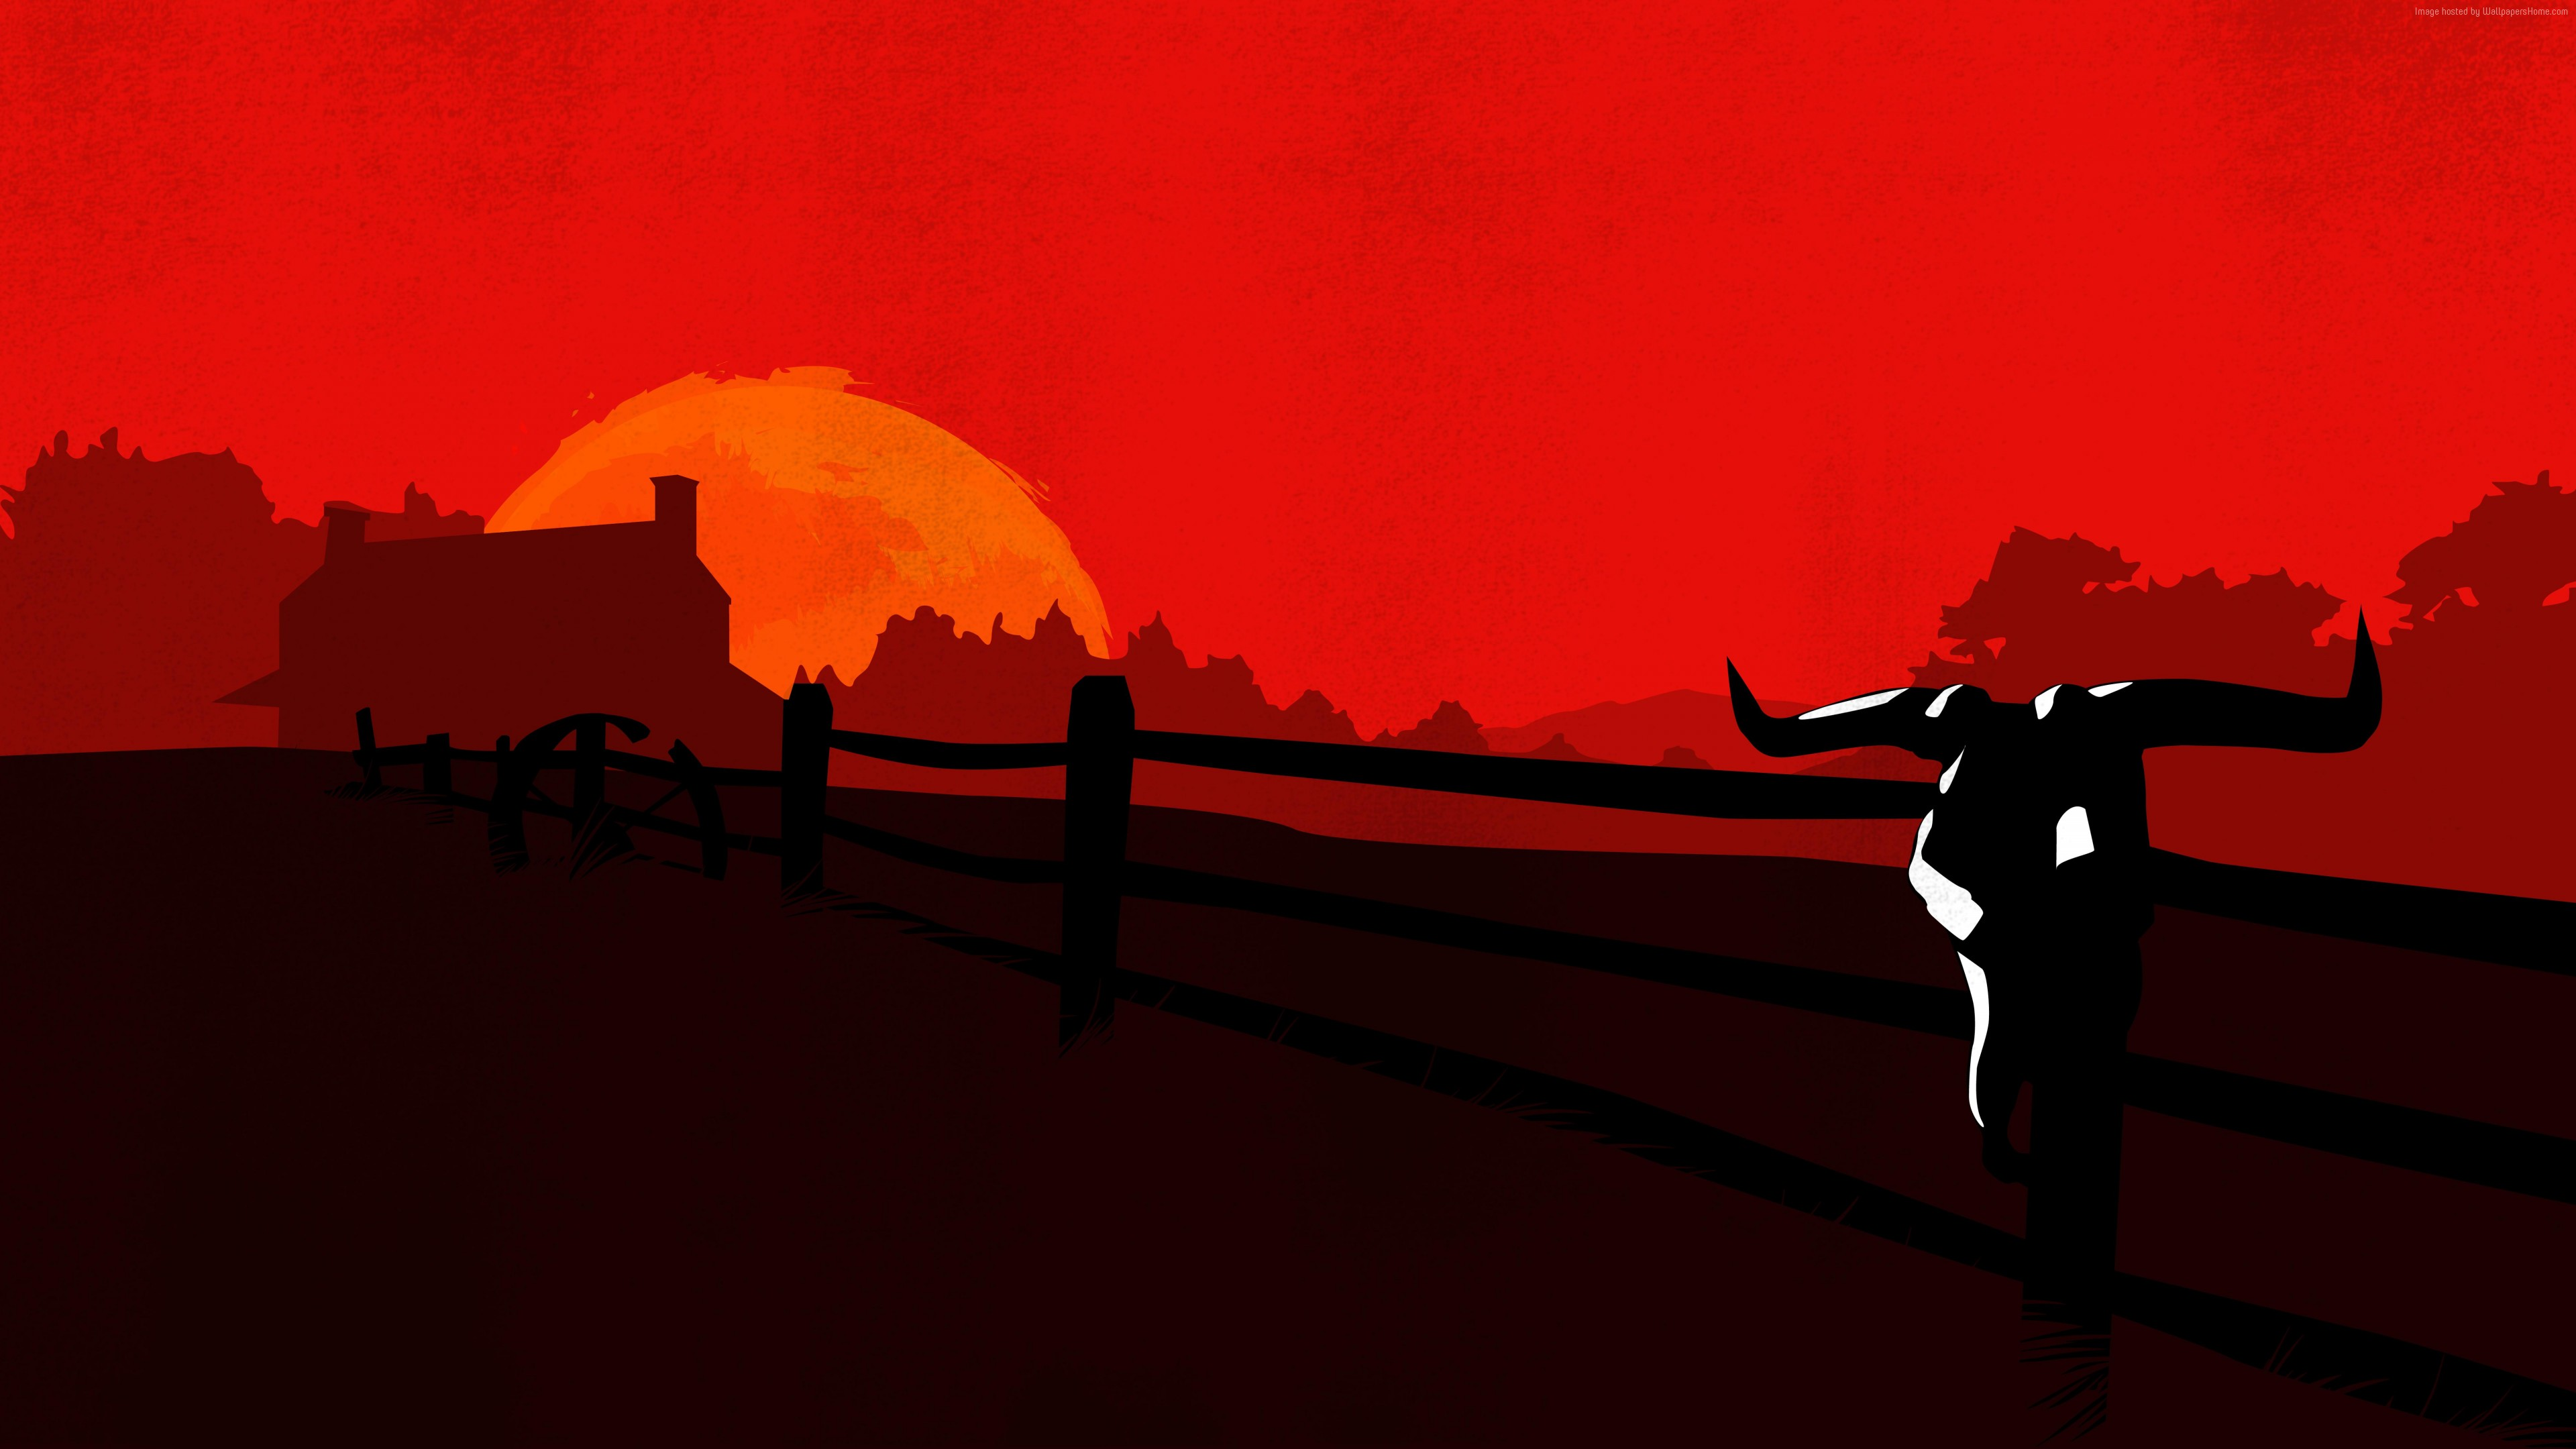 Red Dead Redemption 2 Wallpaper 4k Wallpaper Cart